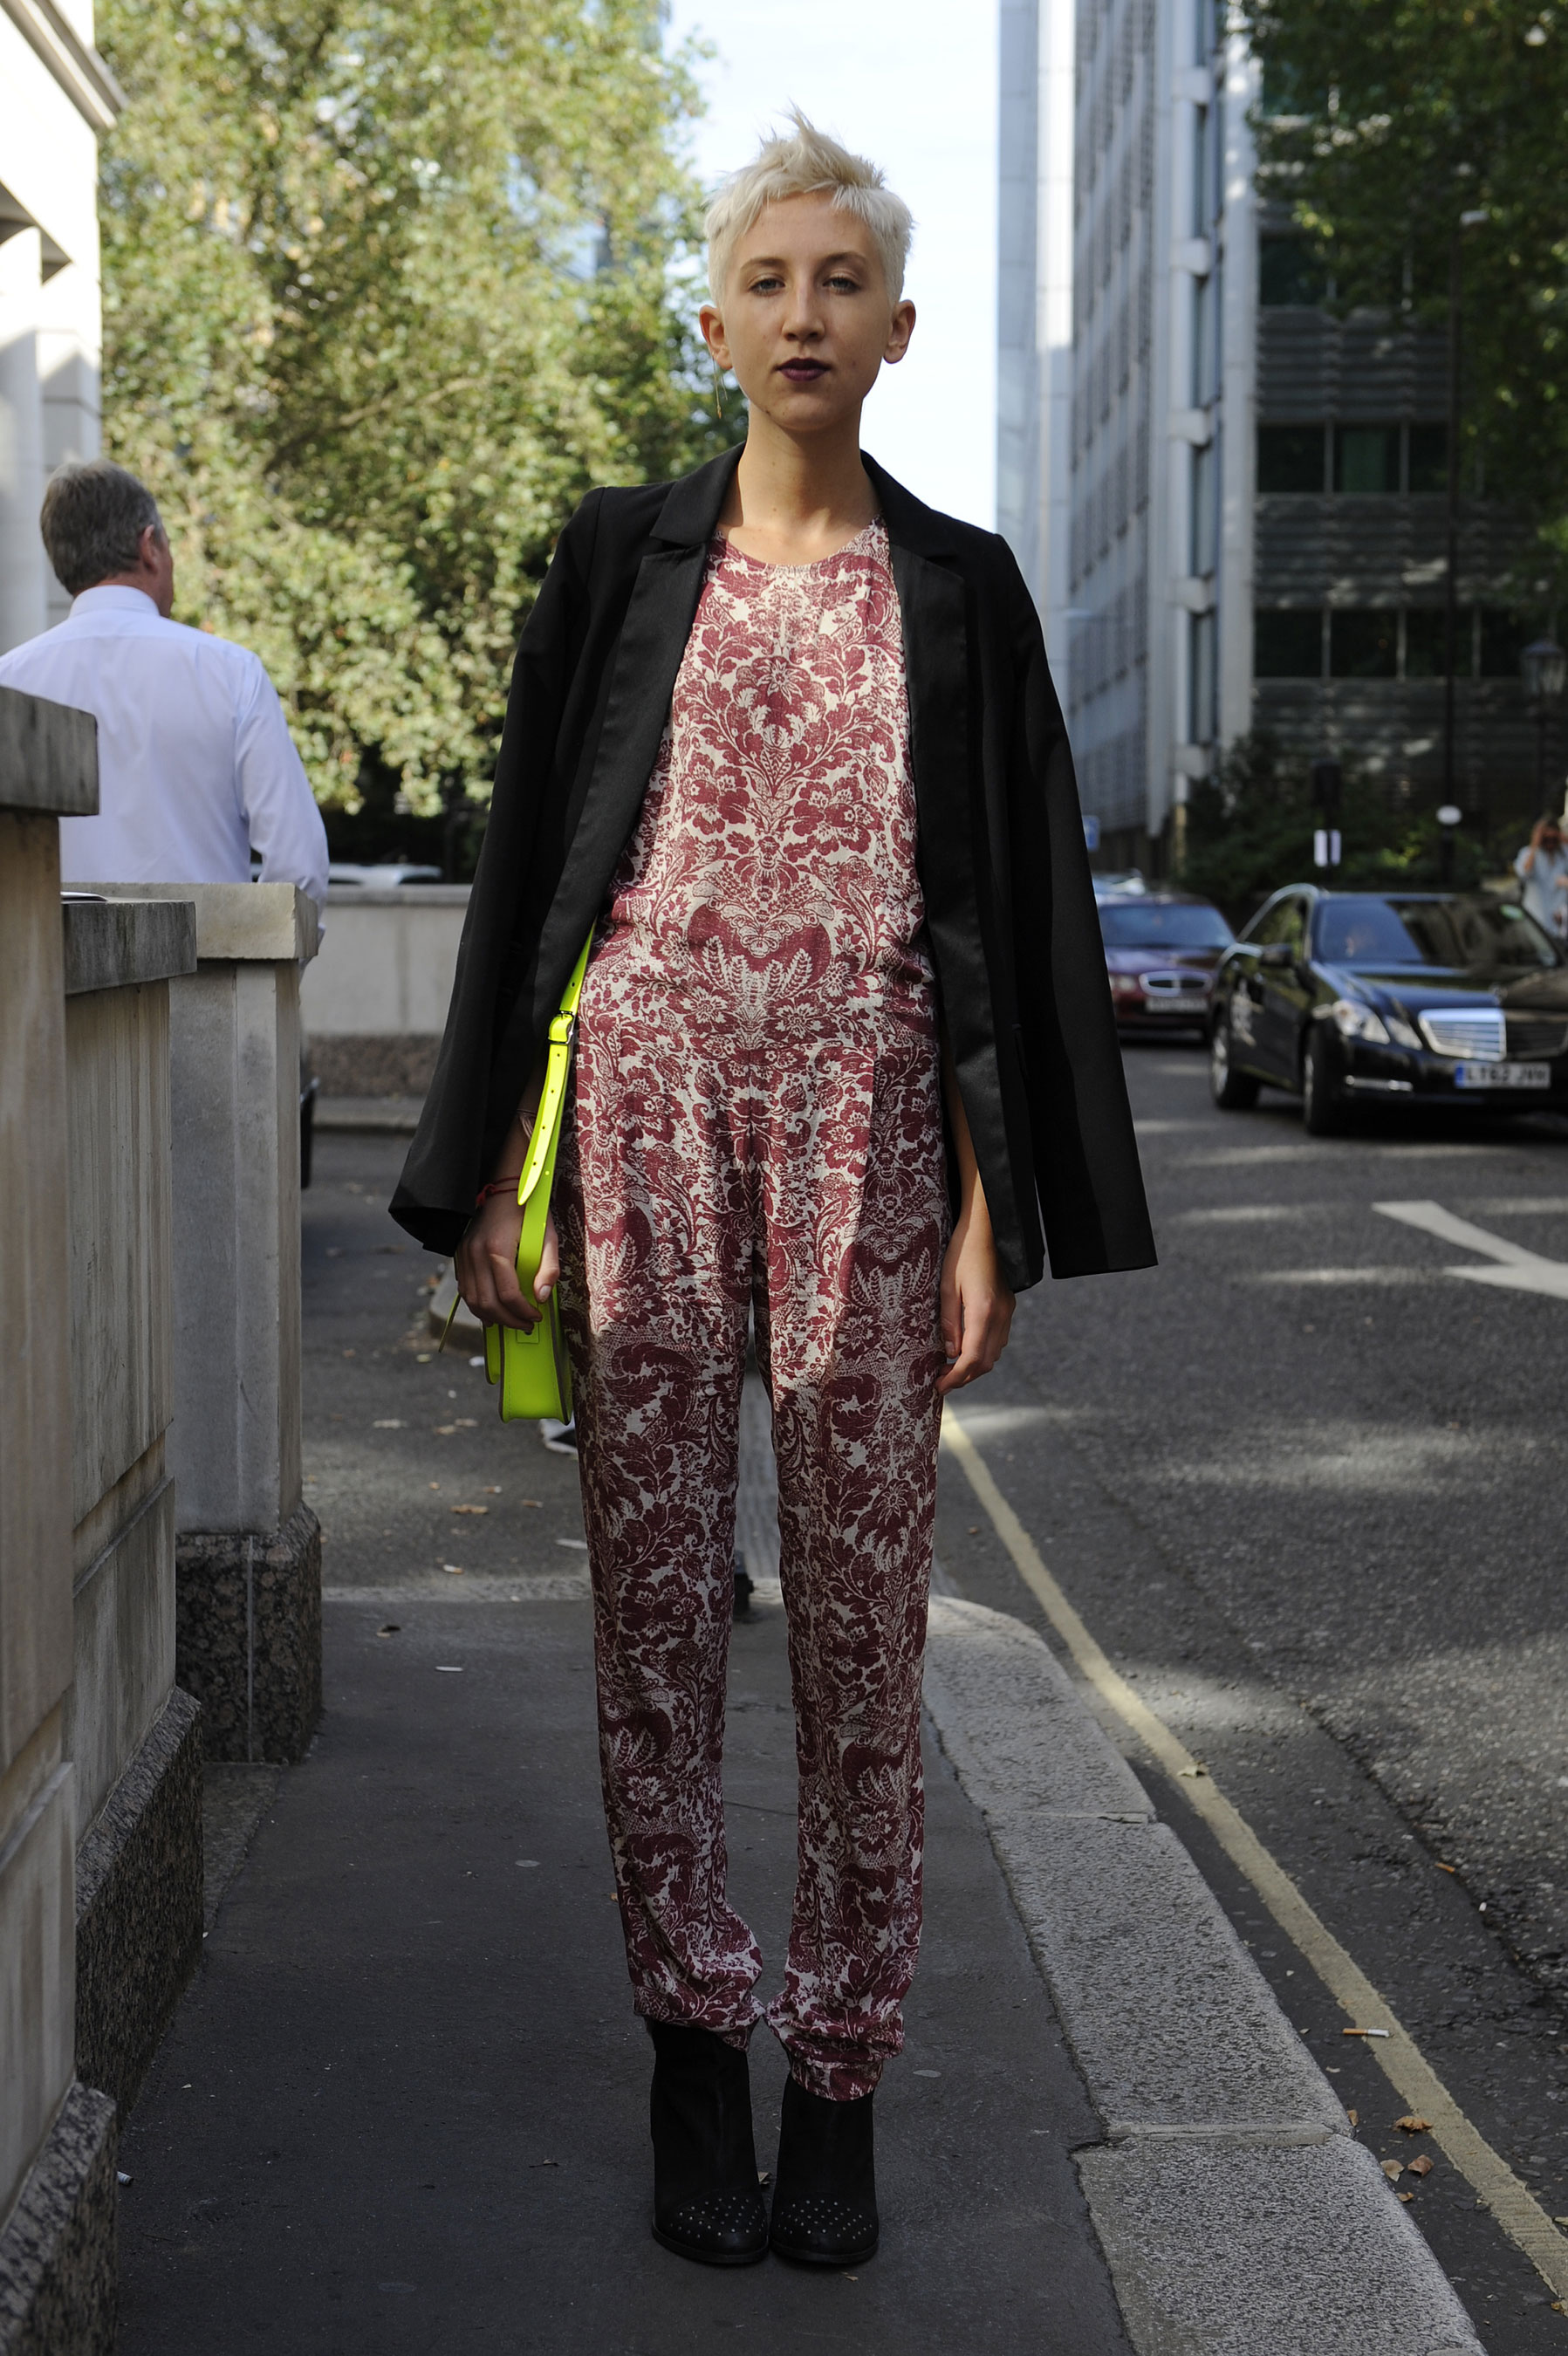 Bold styling was at work here; between the printed jumpsuit and neoprene satchel, this look was made to stand out.